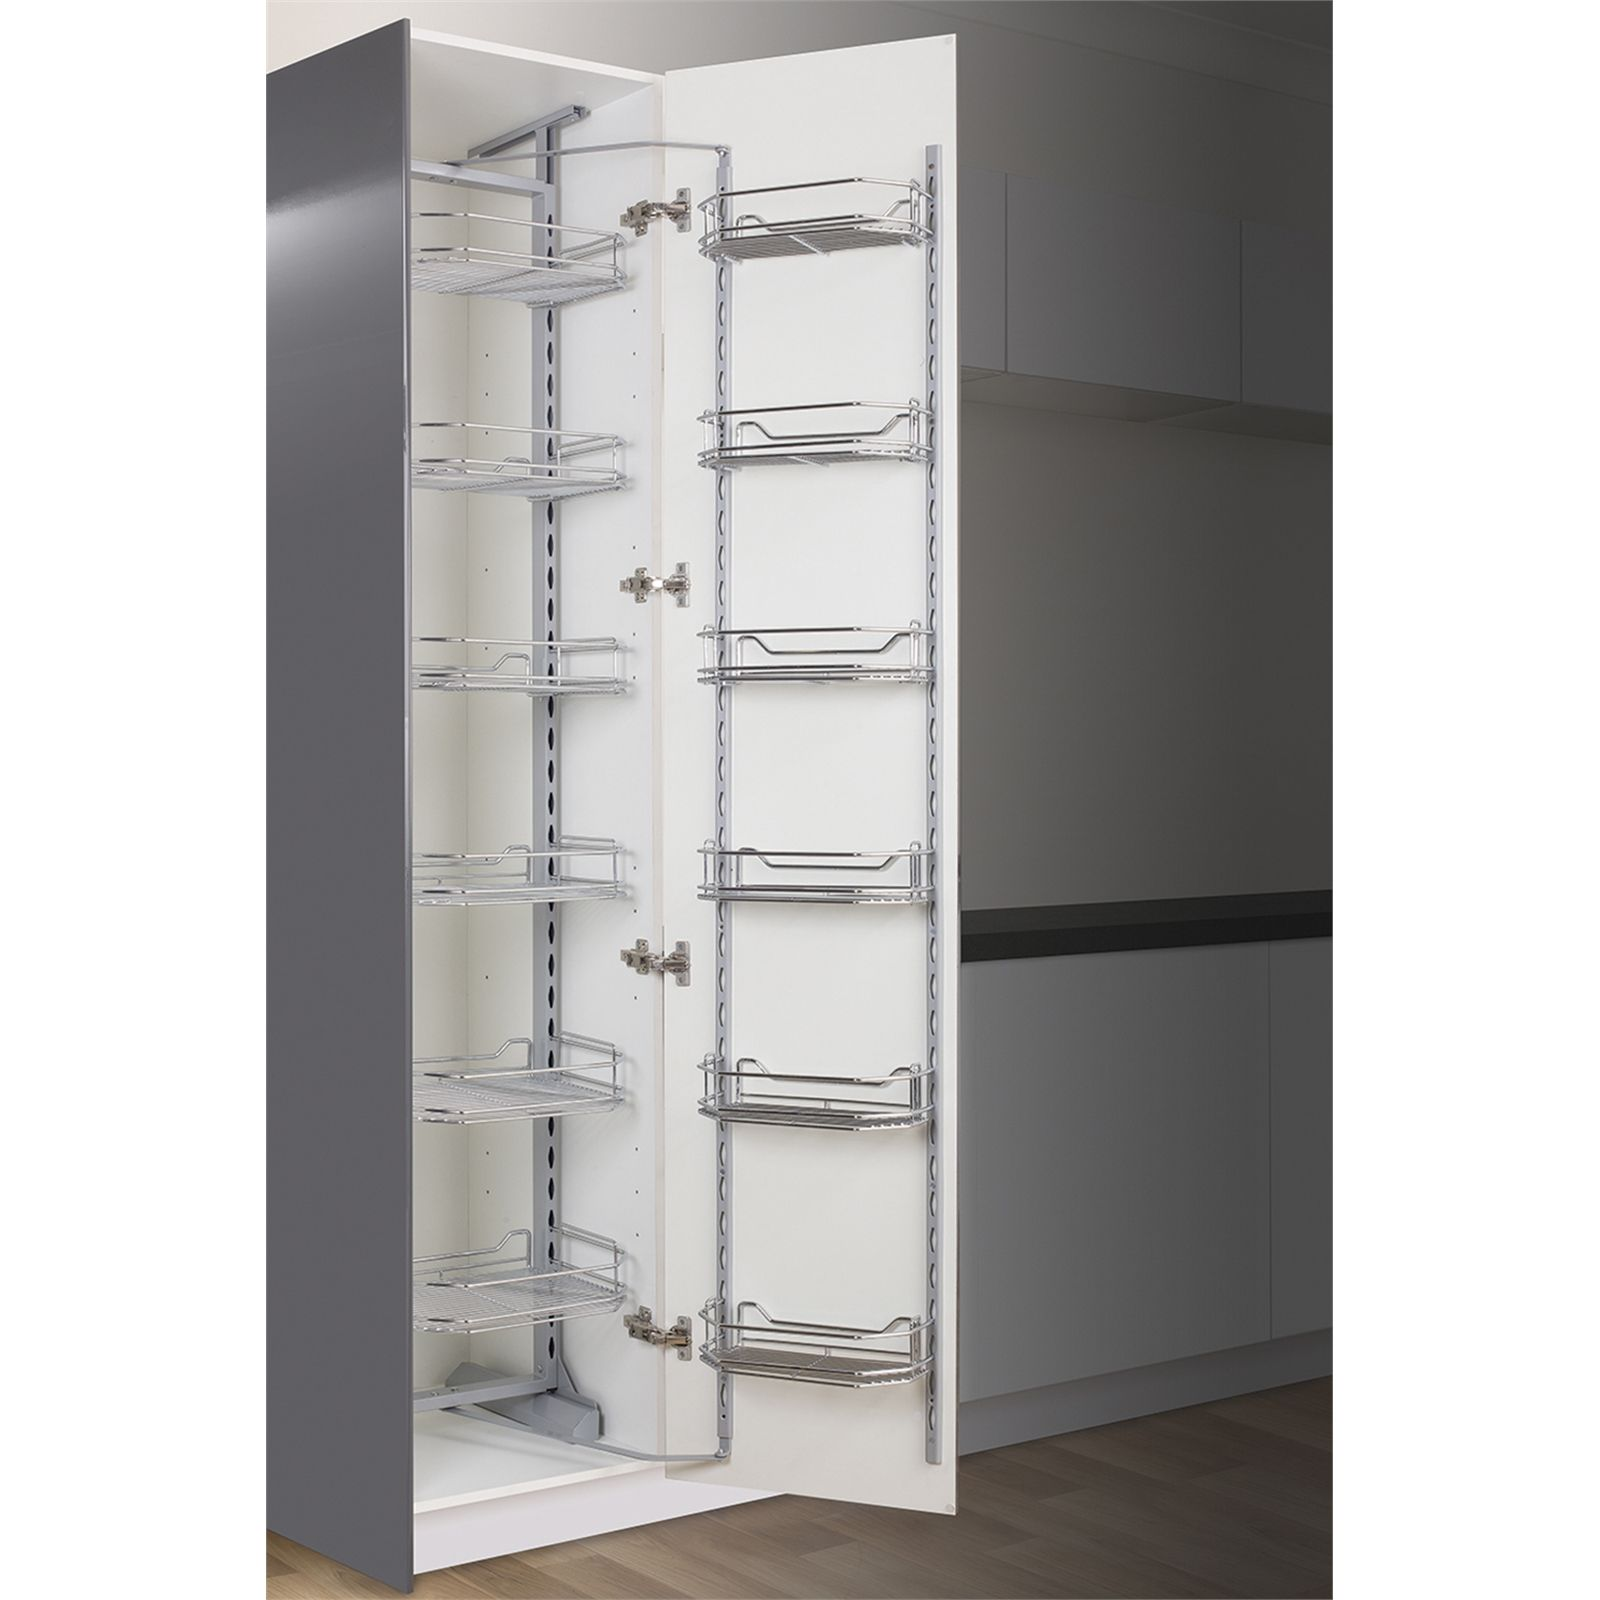 Kaboodle 450mm Chrome 6 Tier Pantry Pullout Baskets Pantry Shelving Corner Pantry Warehouse Shelving